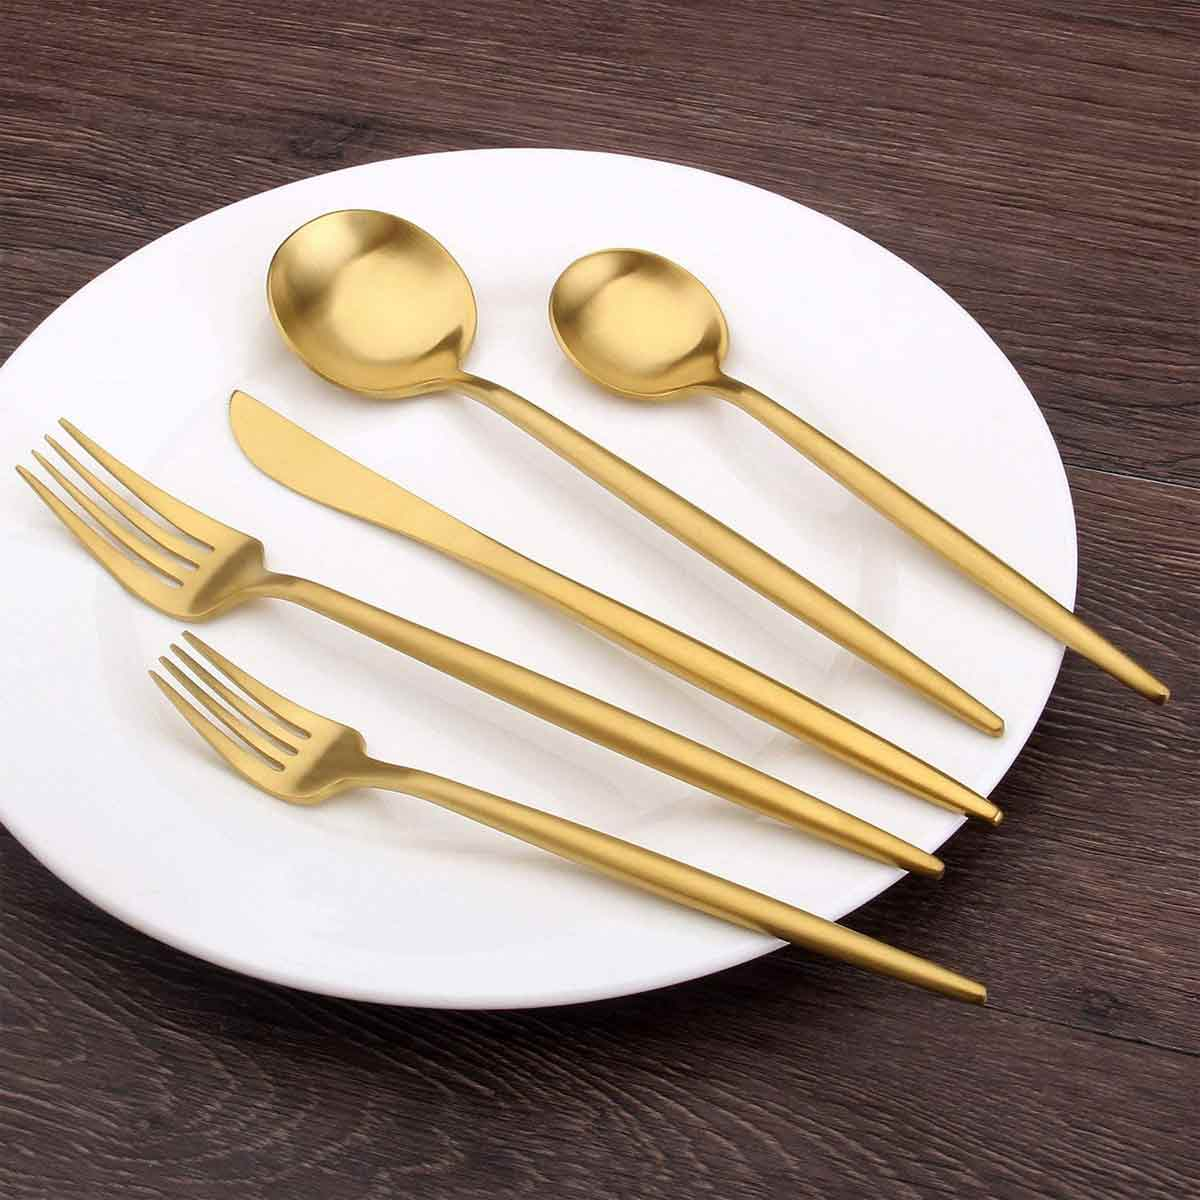 Stainless Steel Satin Finish Flatware Set on Plate